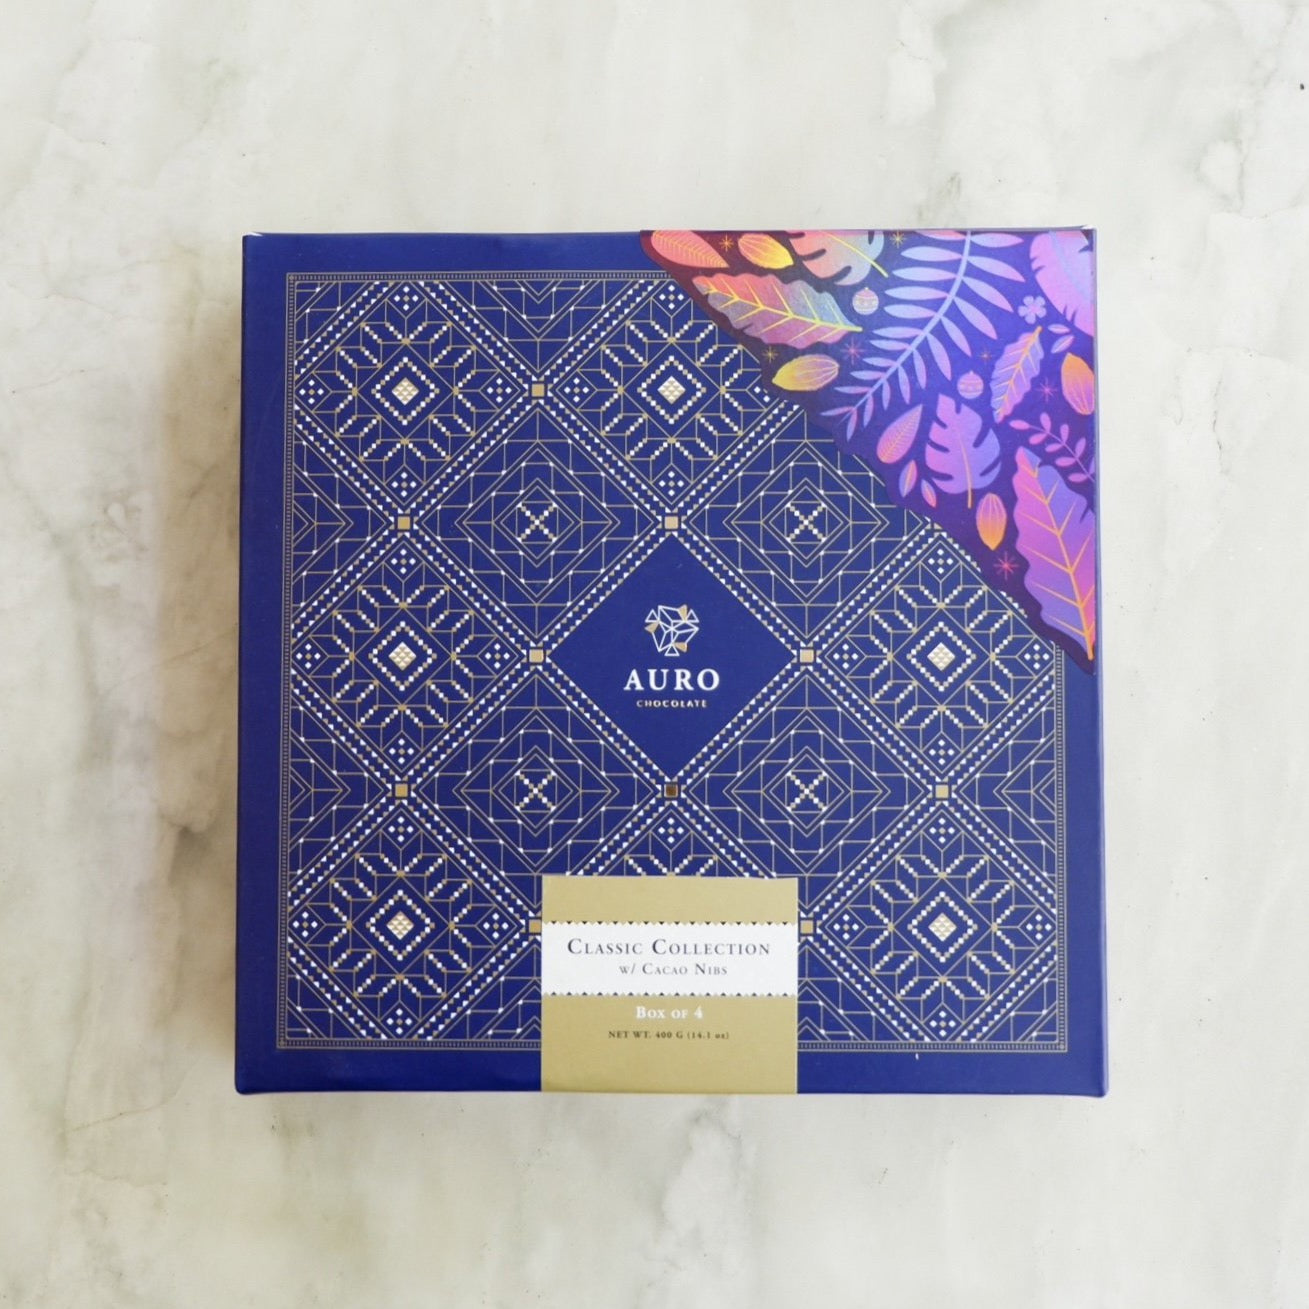 Auro Classic Collection with Cacao Nibs Gift Box